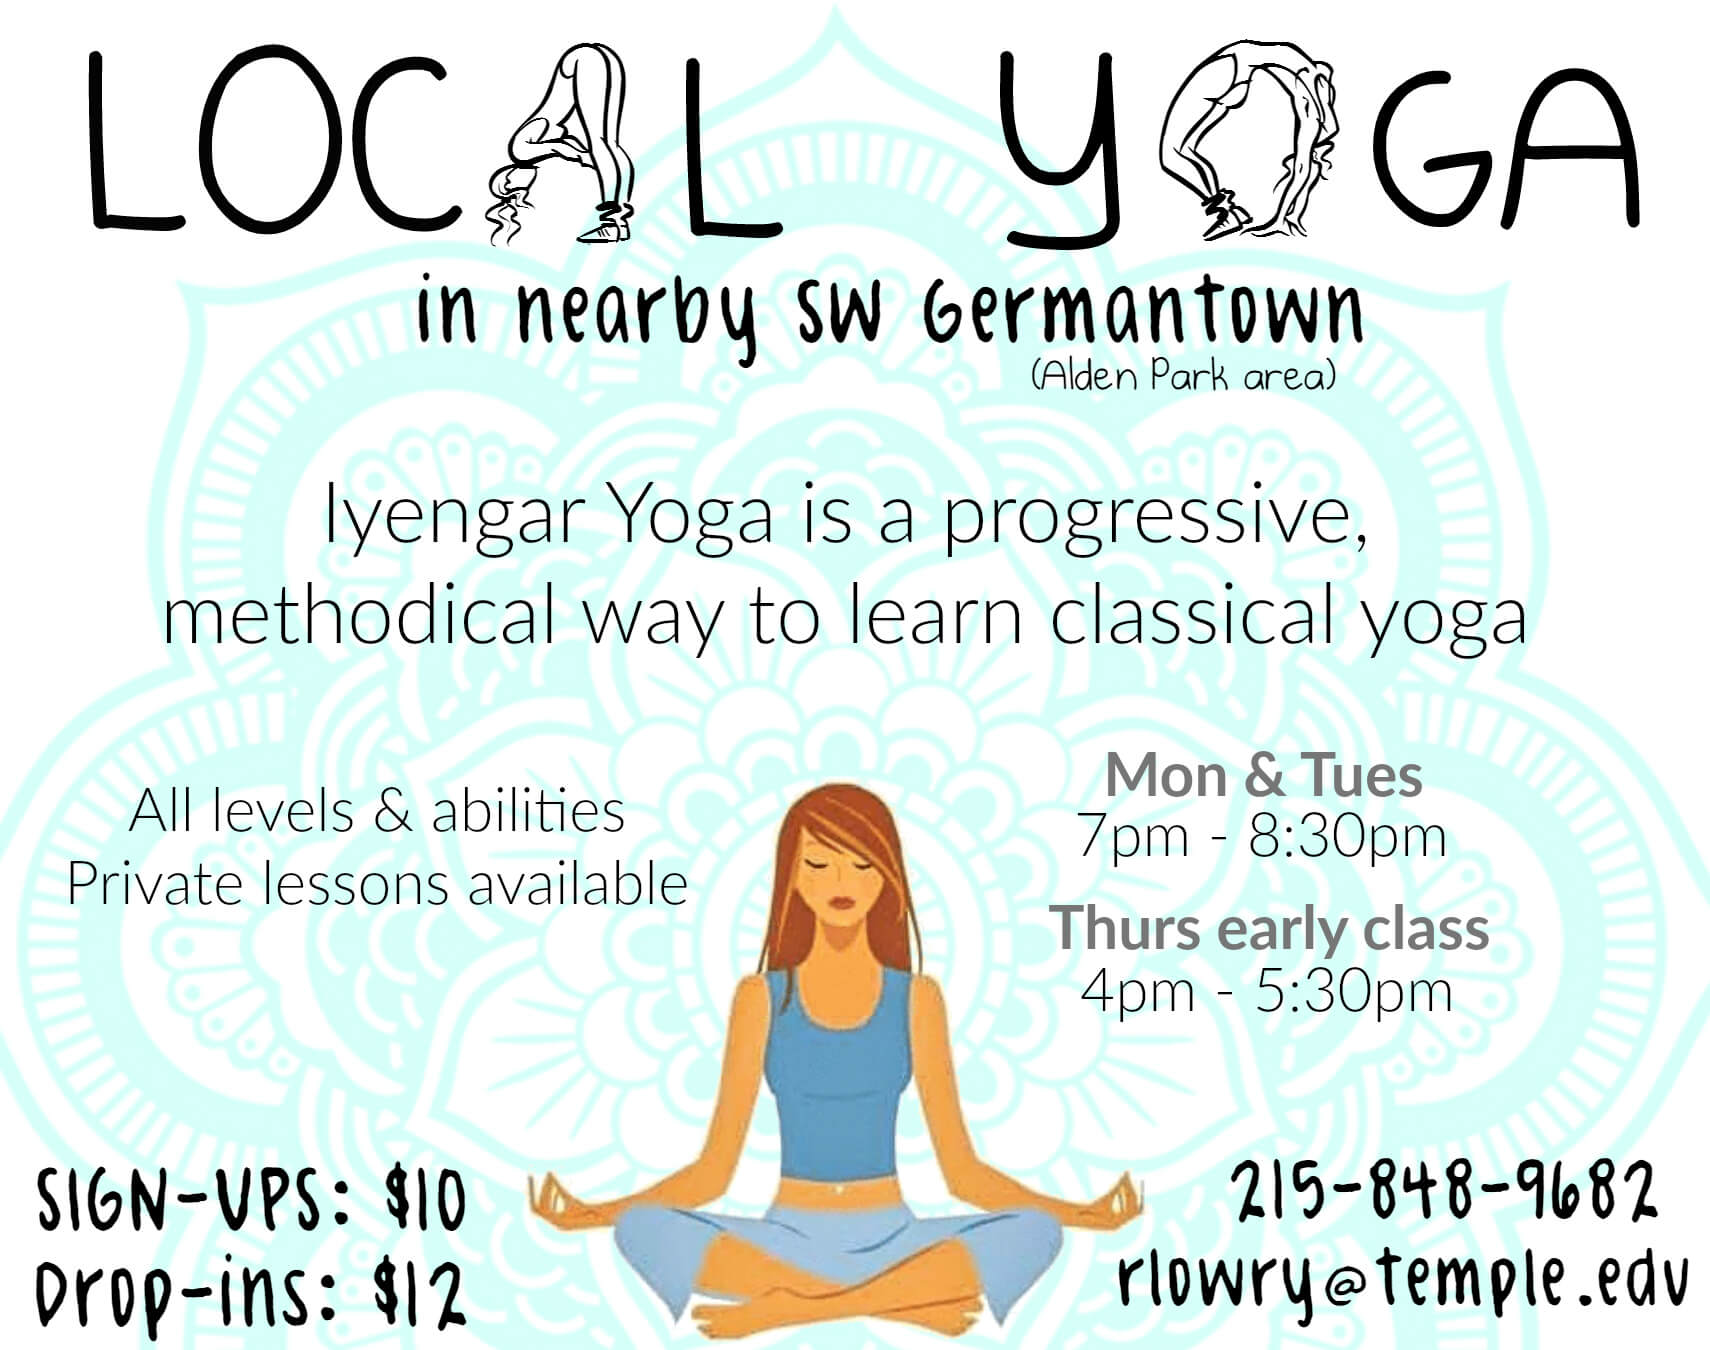 EastFallsLocal yoga girl TEXT CORRECTED 3-16